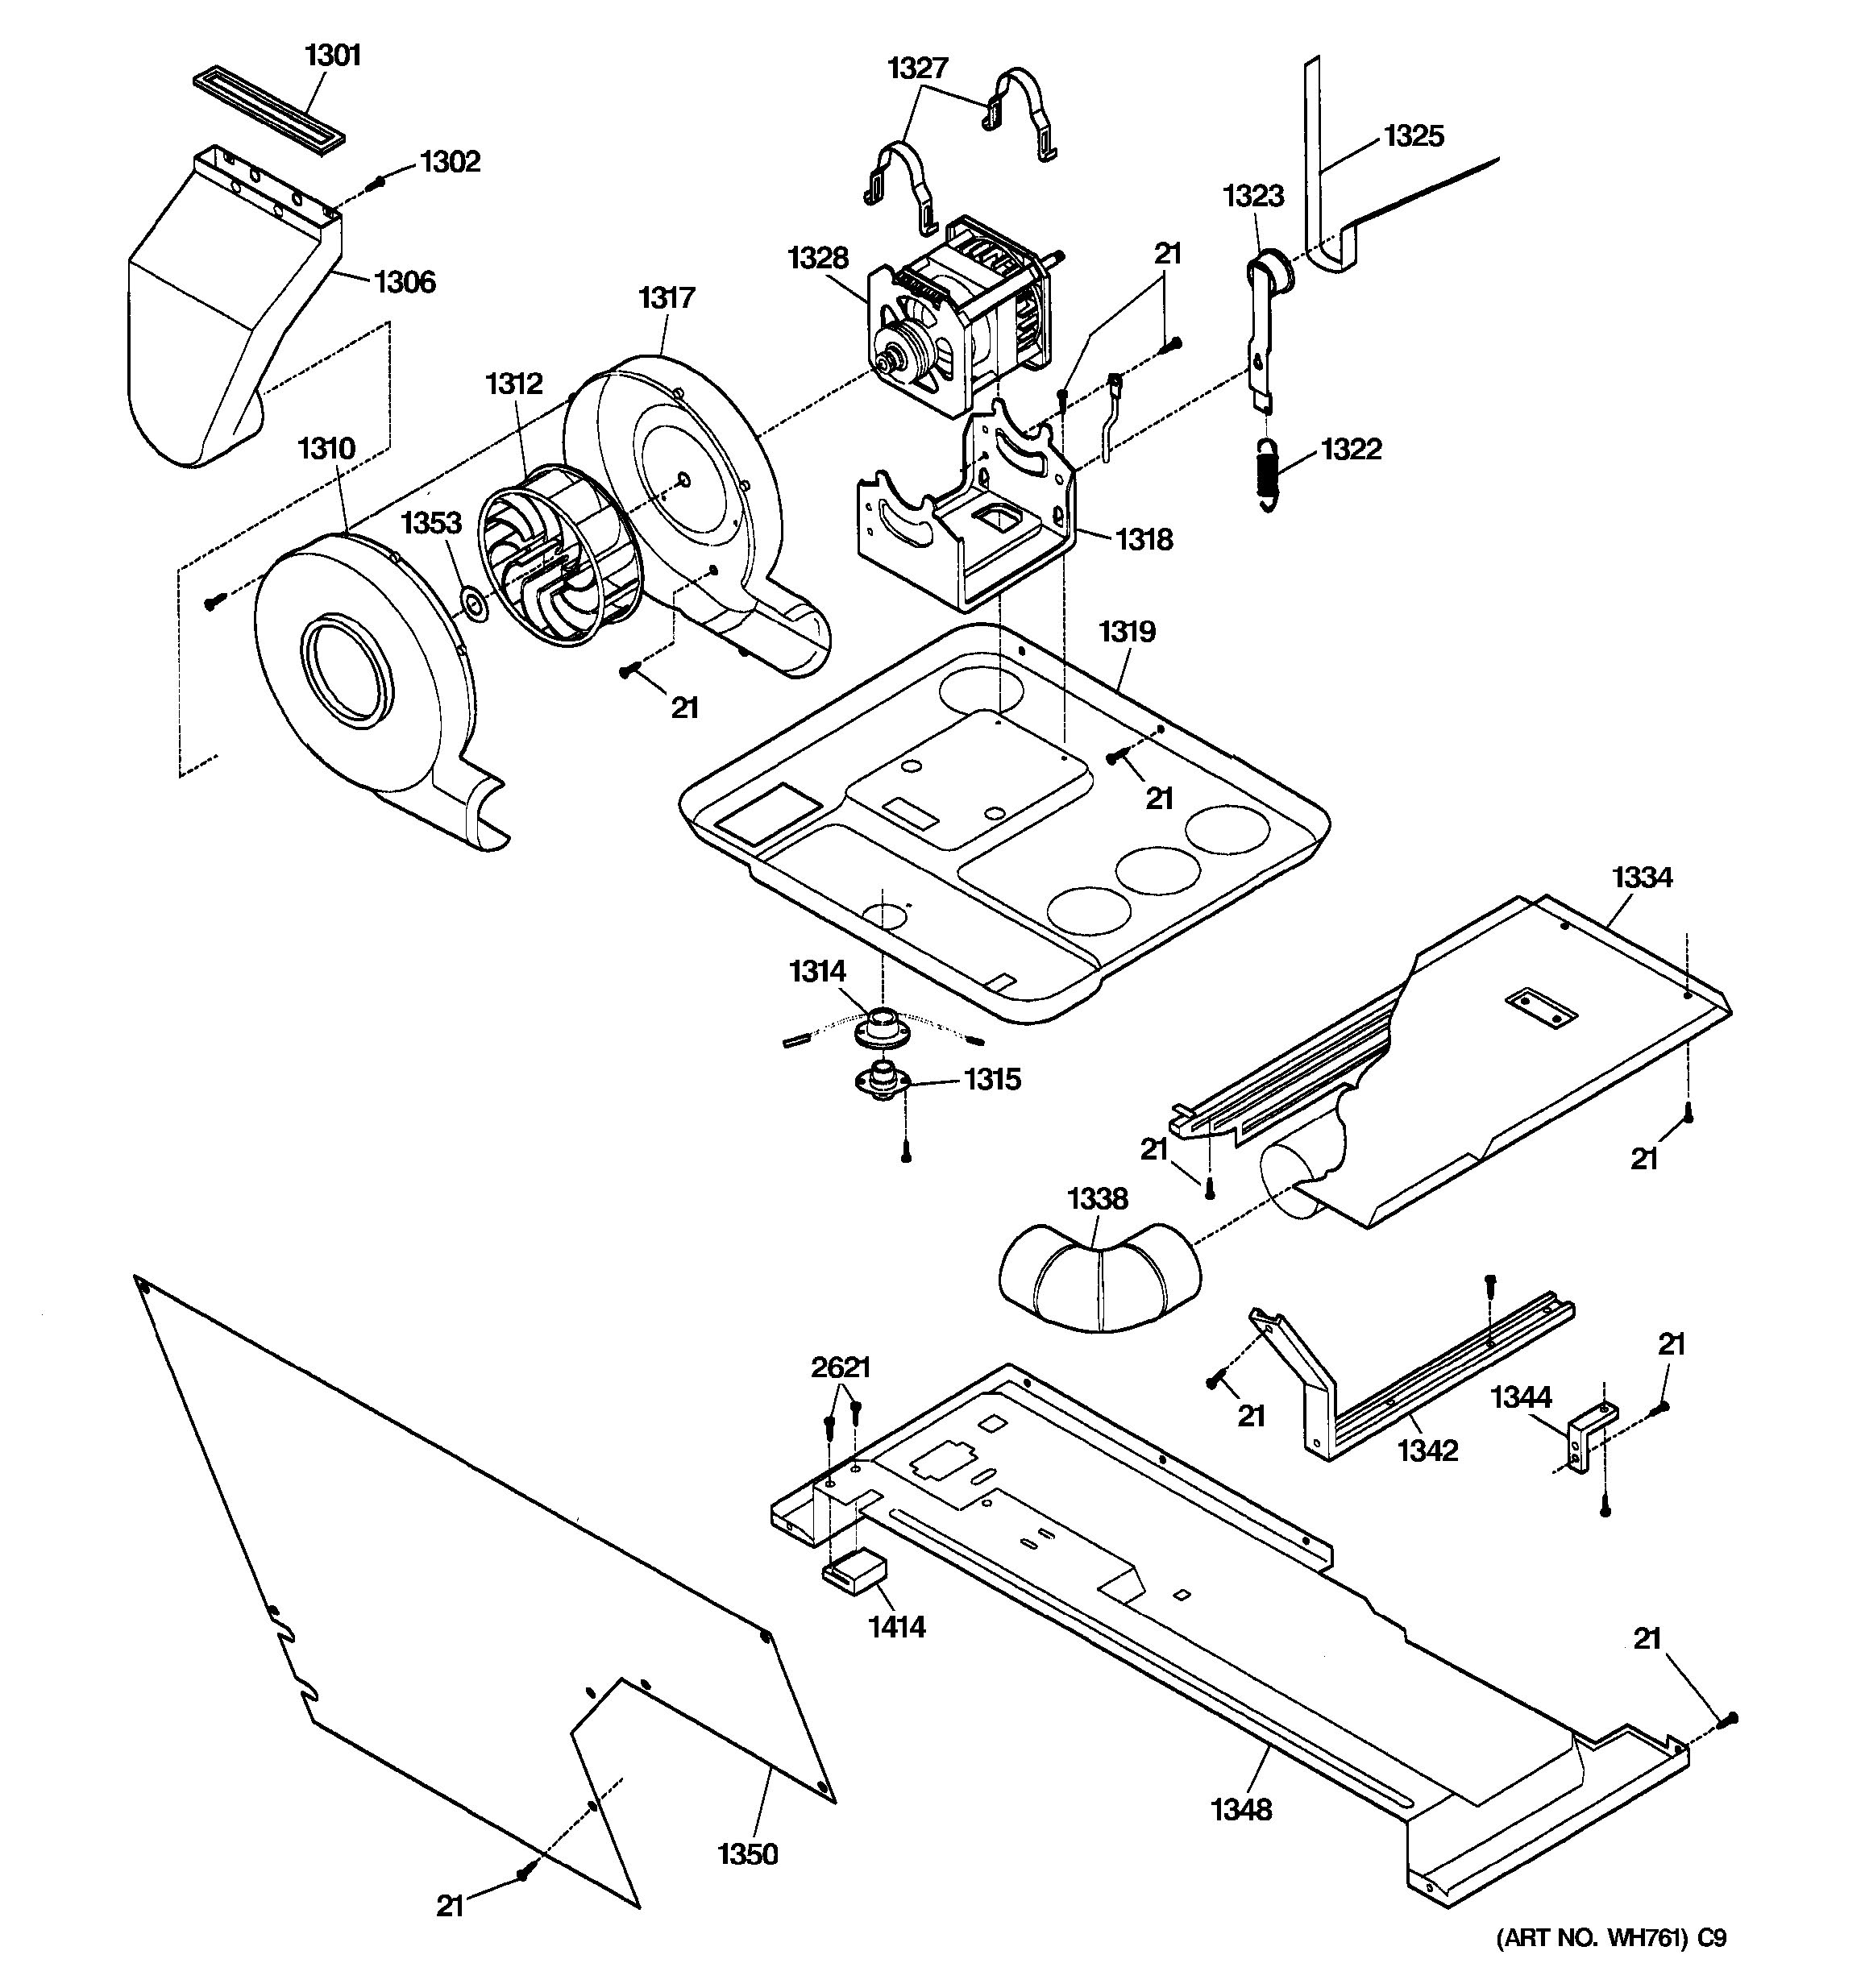 ge dishwasher parts diagram 2007 chevy cobalt wiring assembly view for dryer motor blower and belt wsm2700dawww